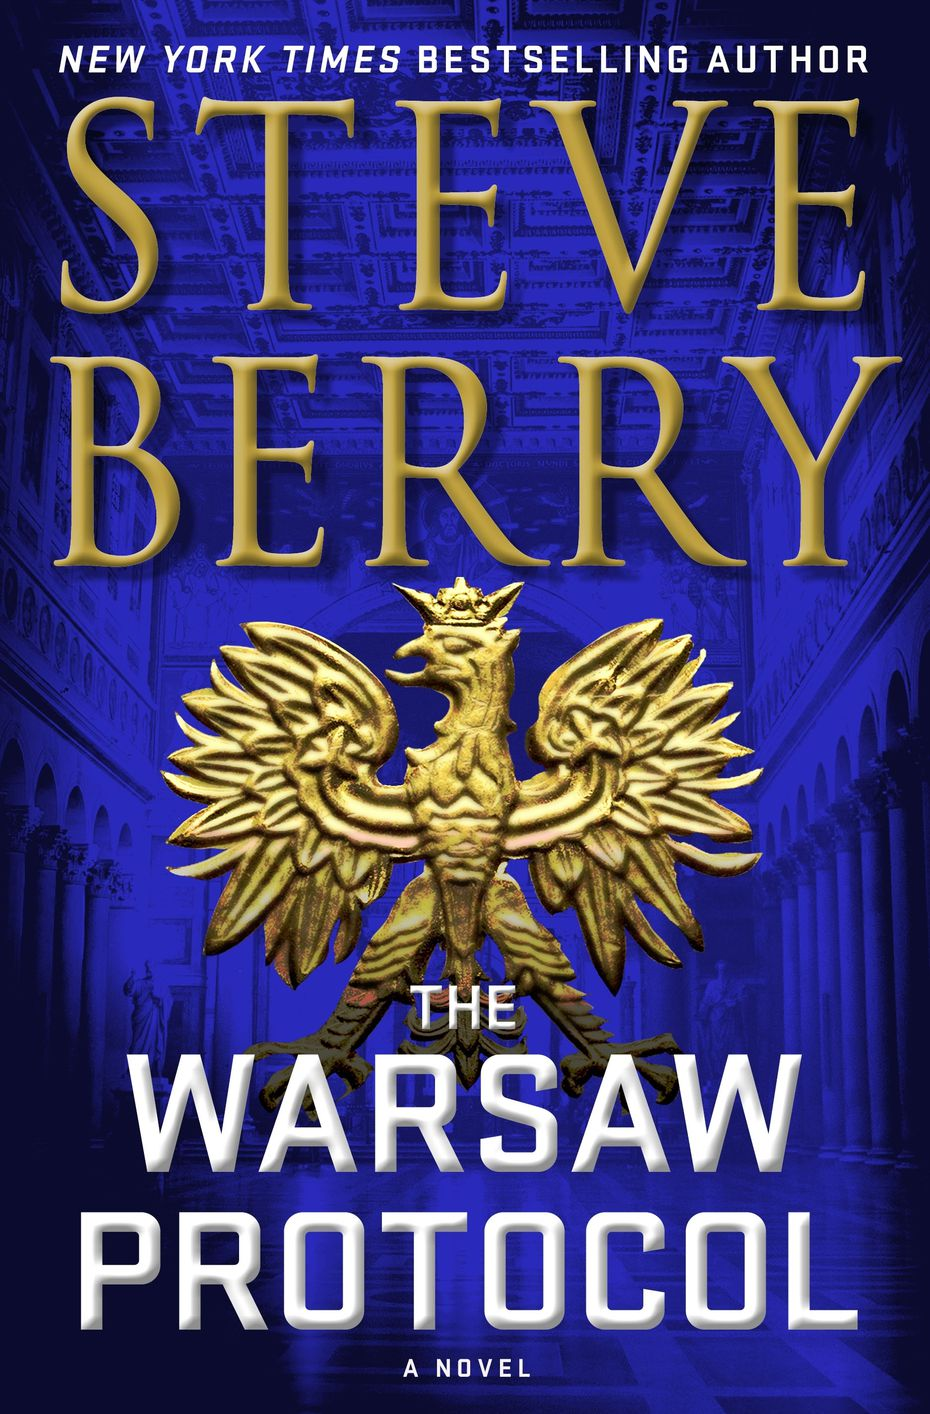 """In """"The Warsaw Protocol,"""" elements of classic spy thrillers play out on a global scale."""